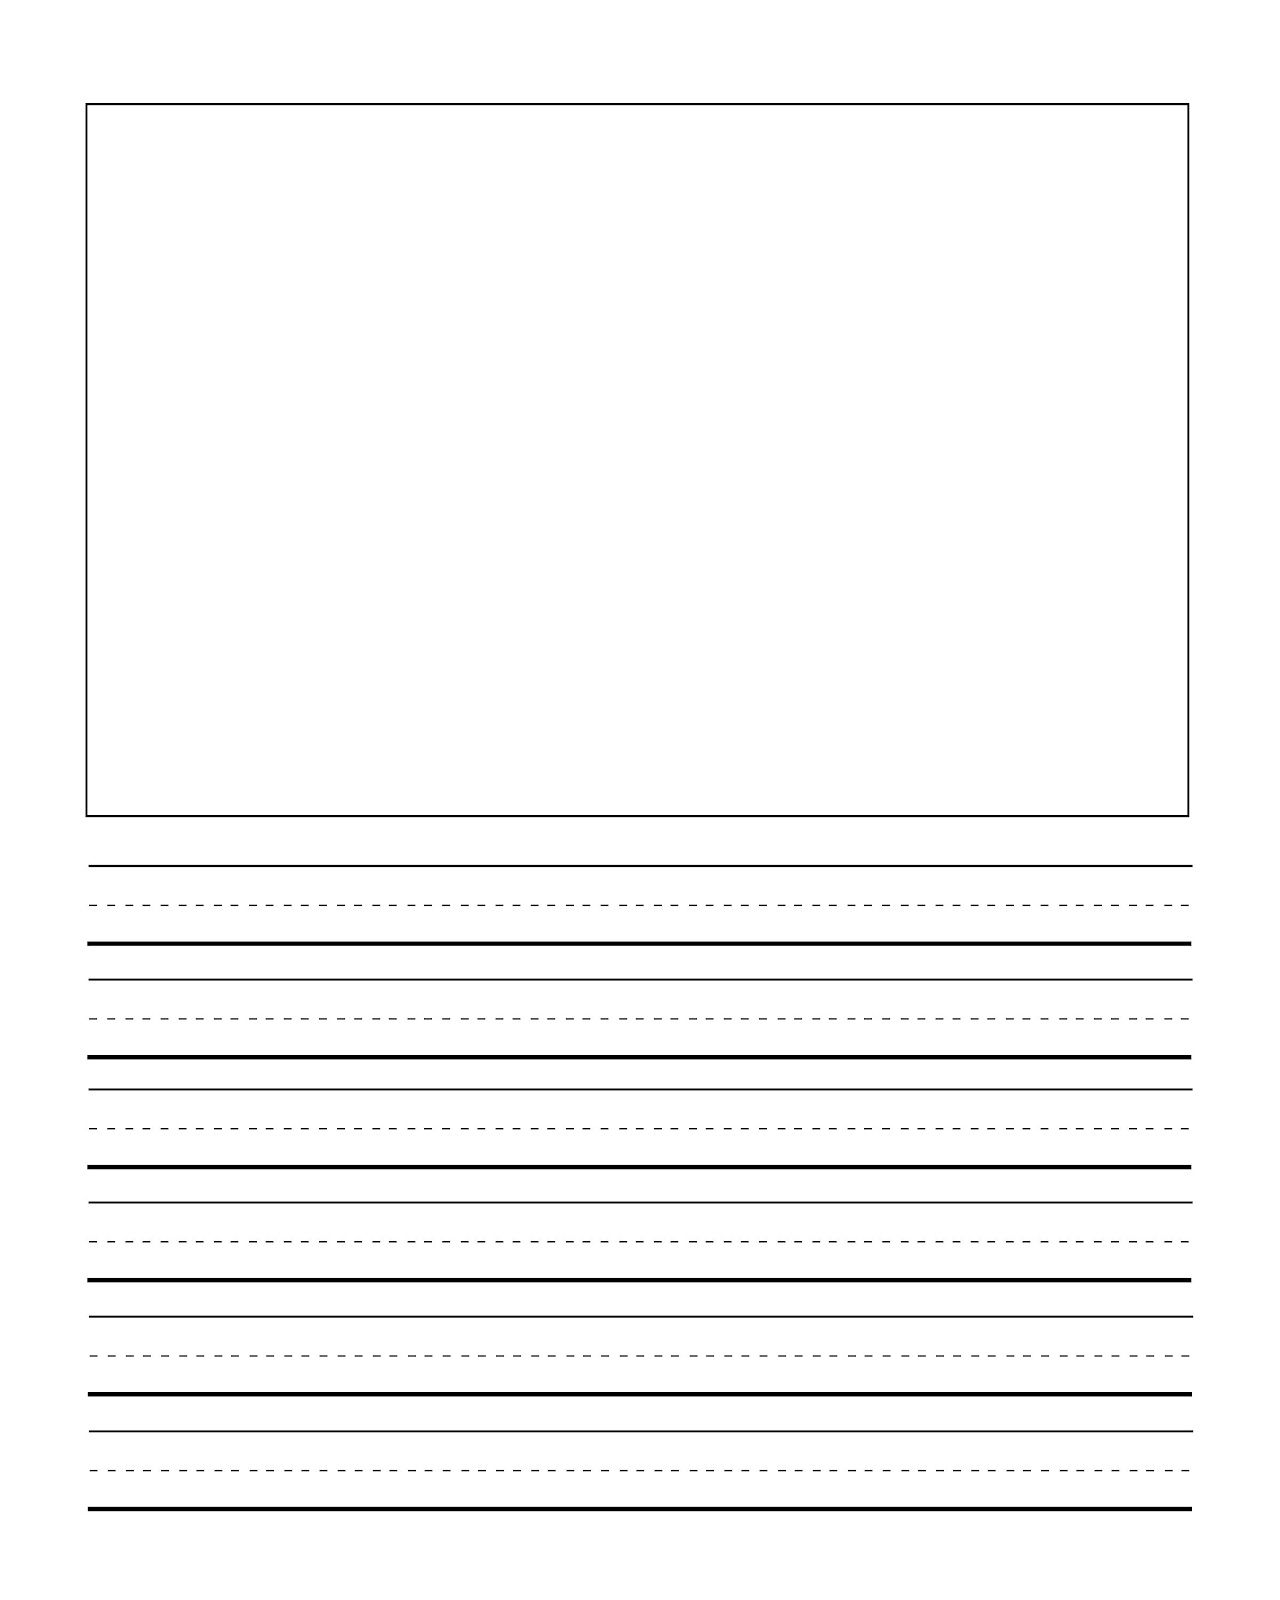 Thrid Grade Writing Journal Coloring Page